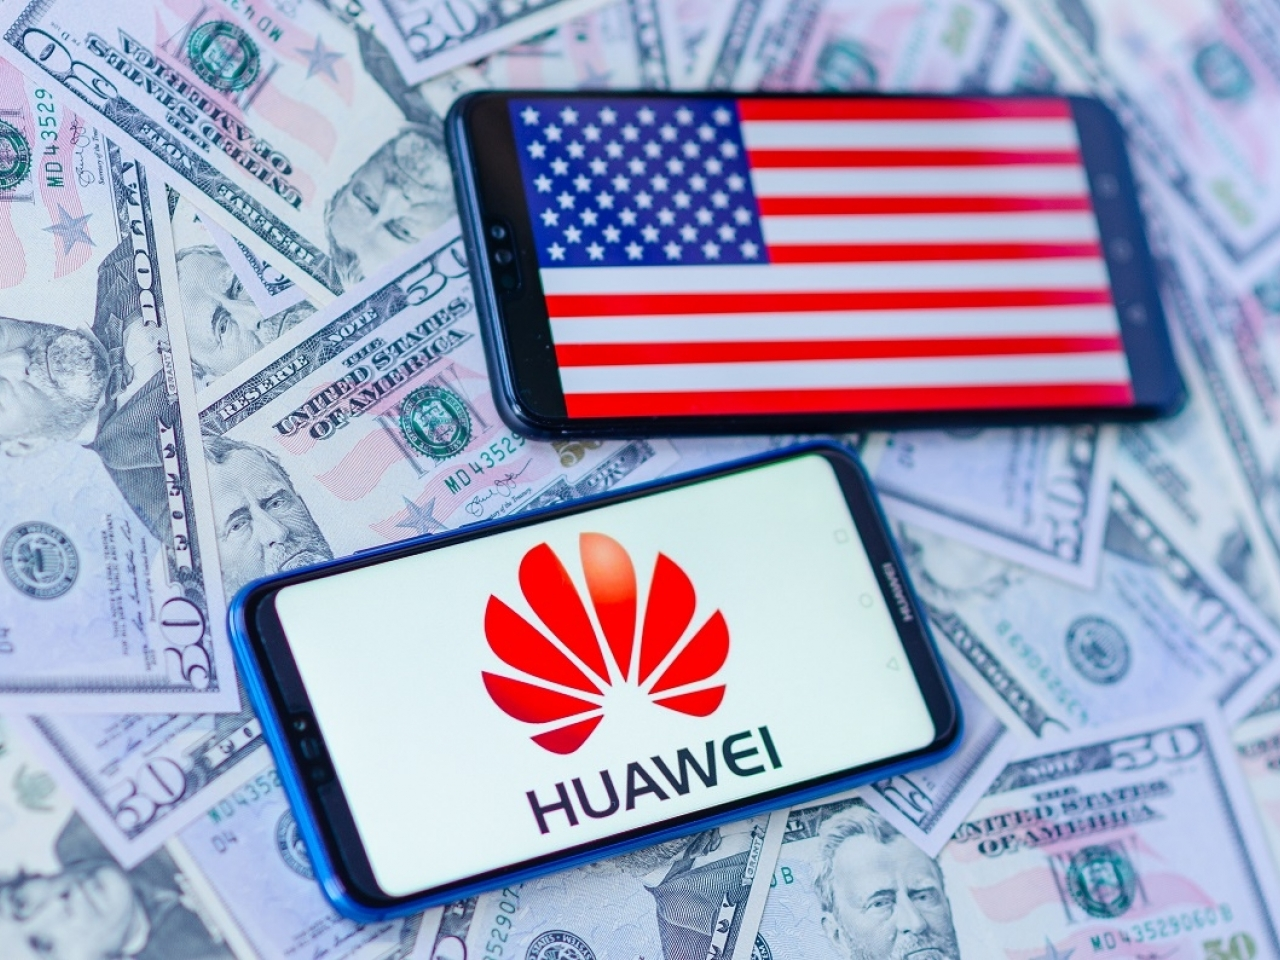 Washington claims that Beijing could use Huawei equipment to spy. Huawei has repeatedly denied being a national security risk. Image: Shutterstock